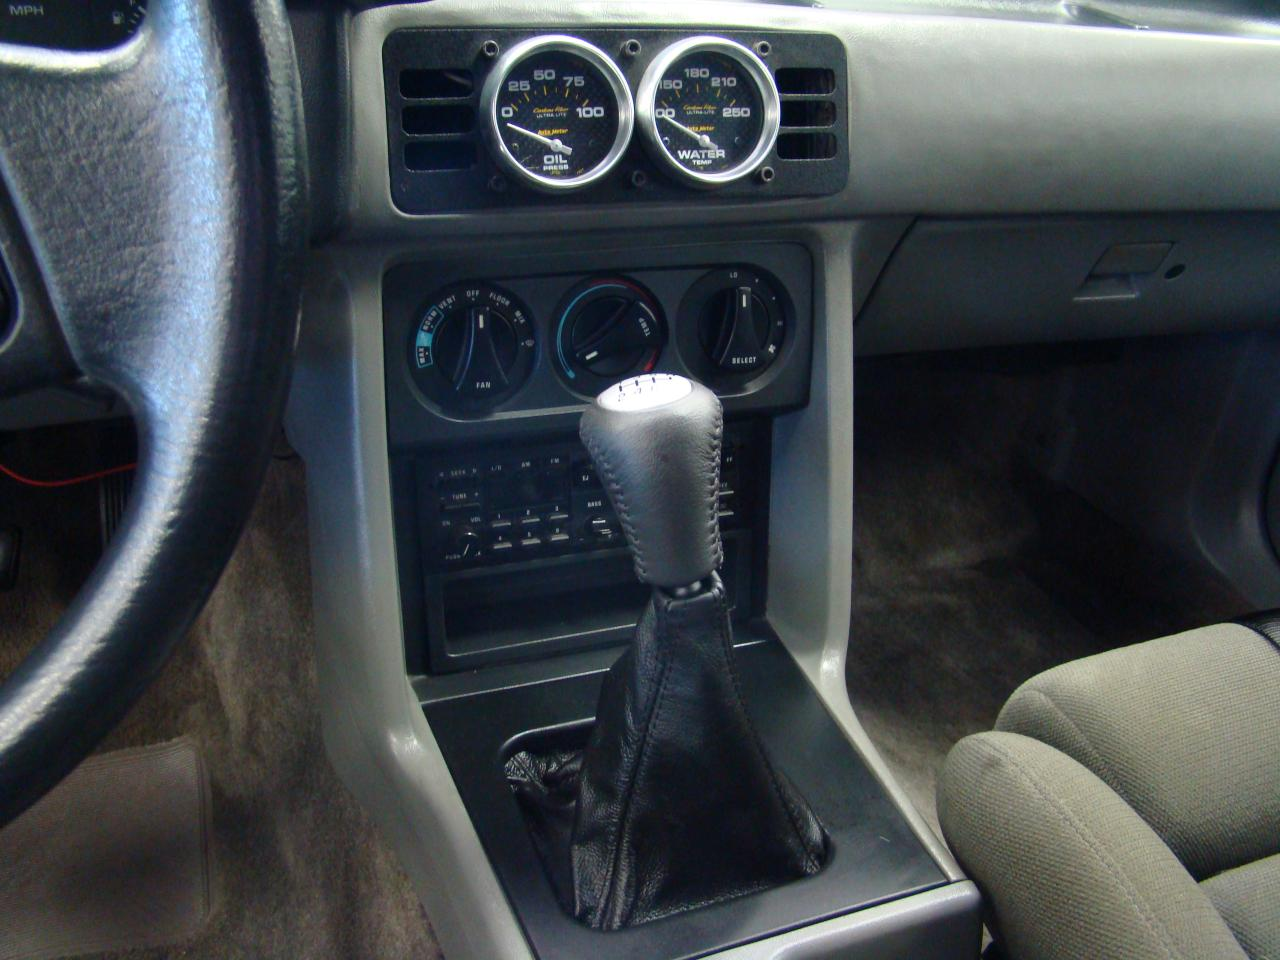 JBA Team Dominator GTA Shifter and Interior